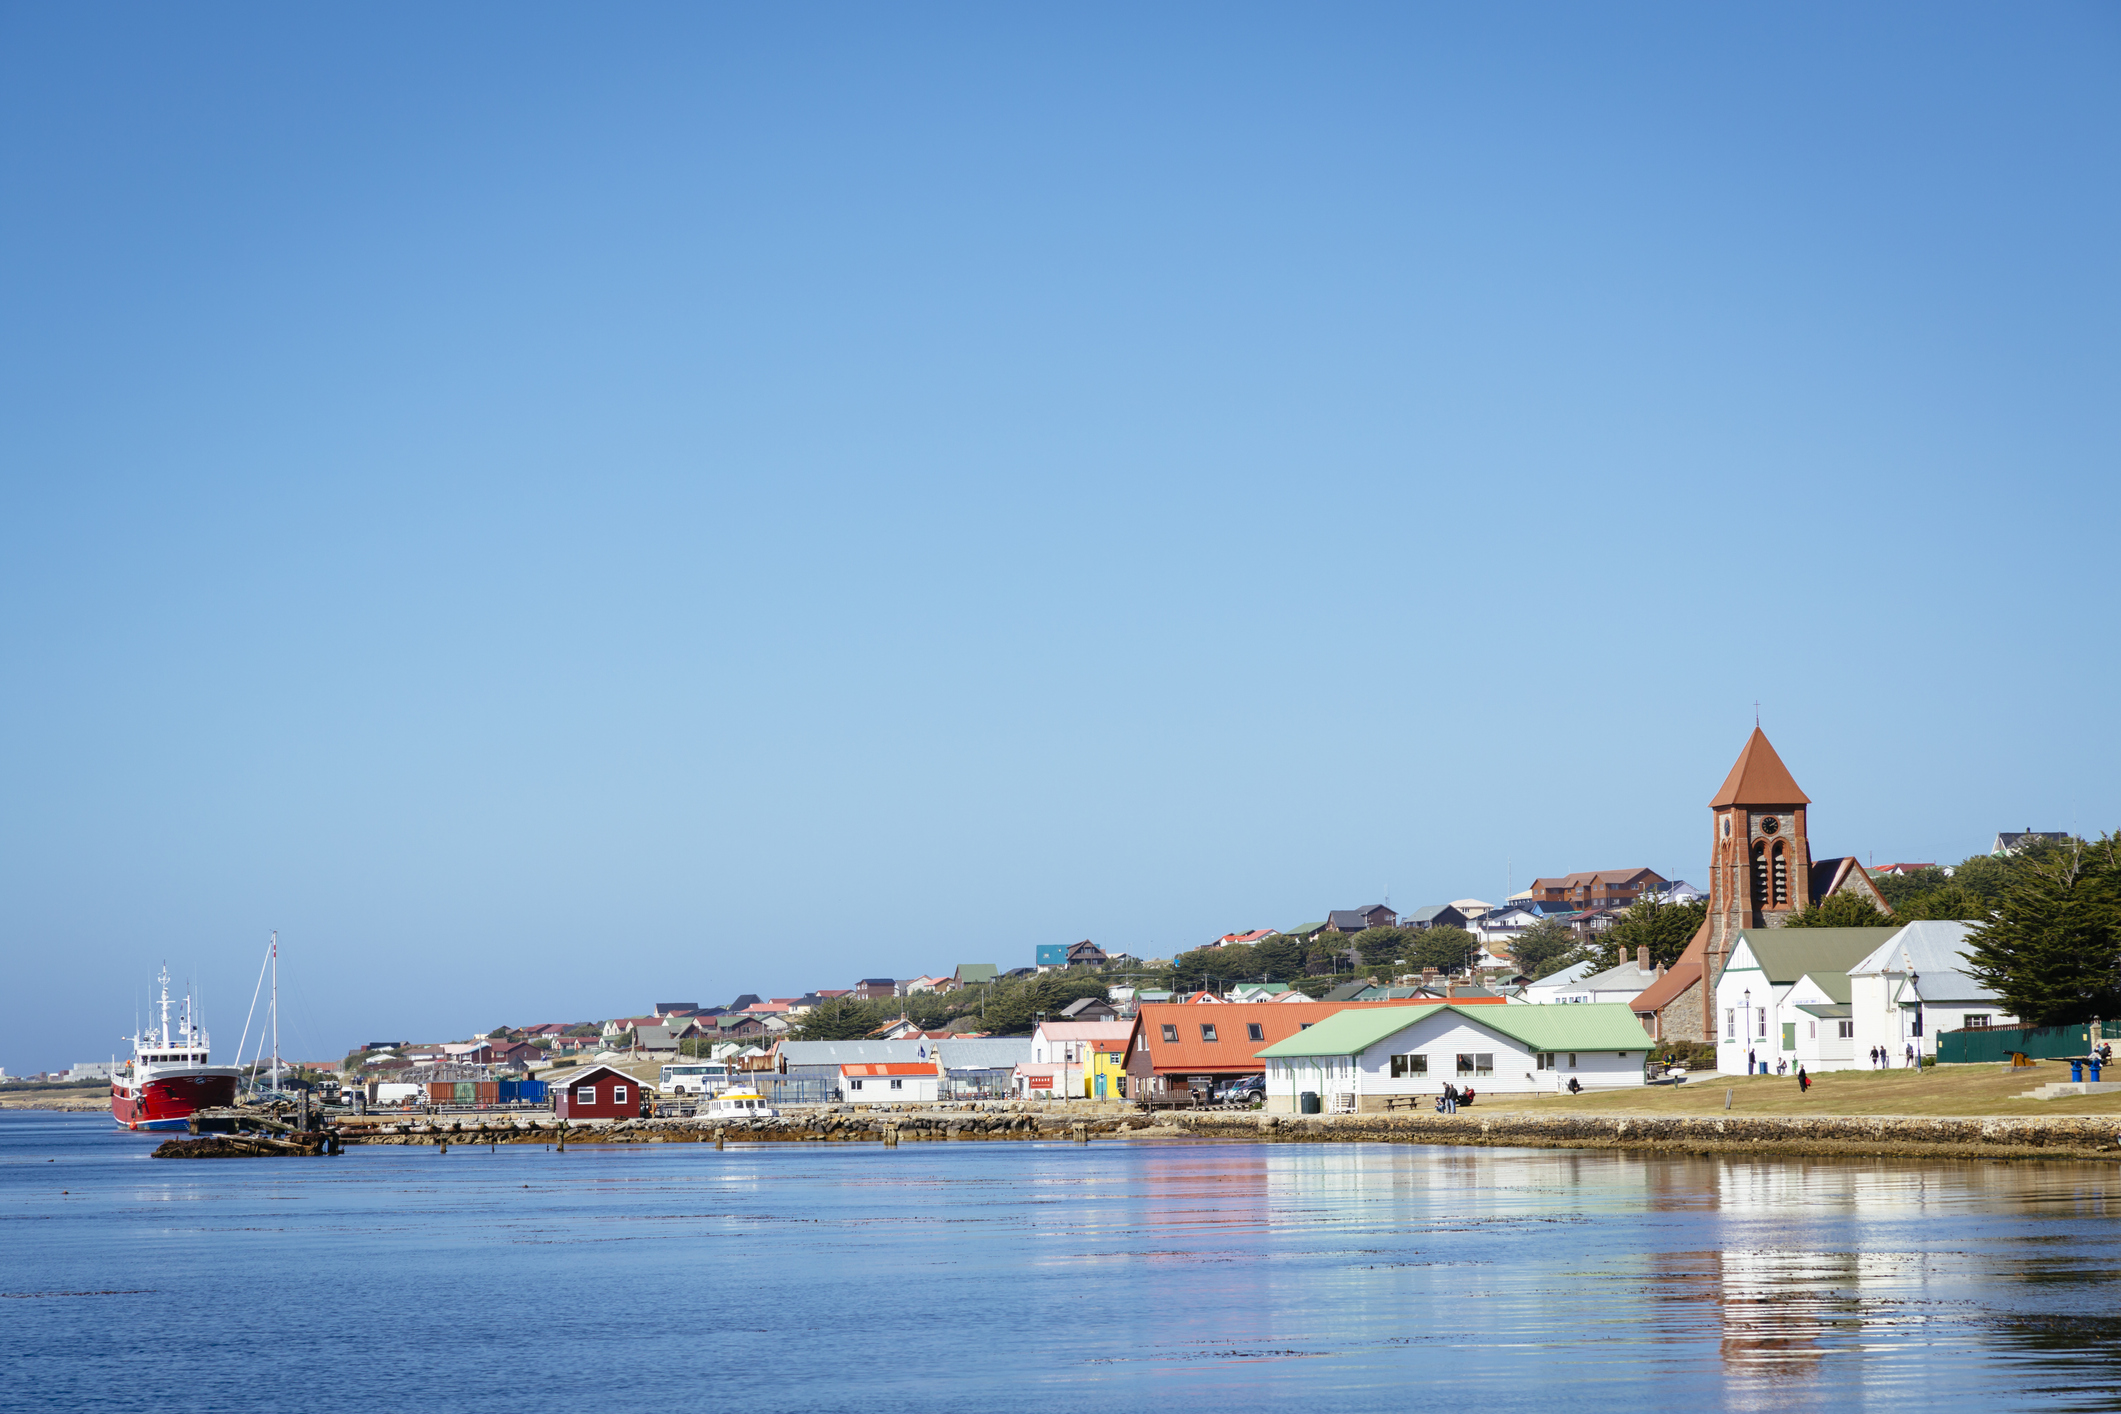 The waterfront at Stanley, the capital of the Falkland Islands.